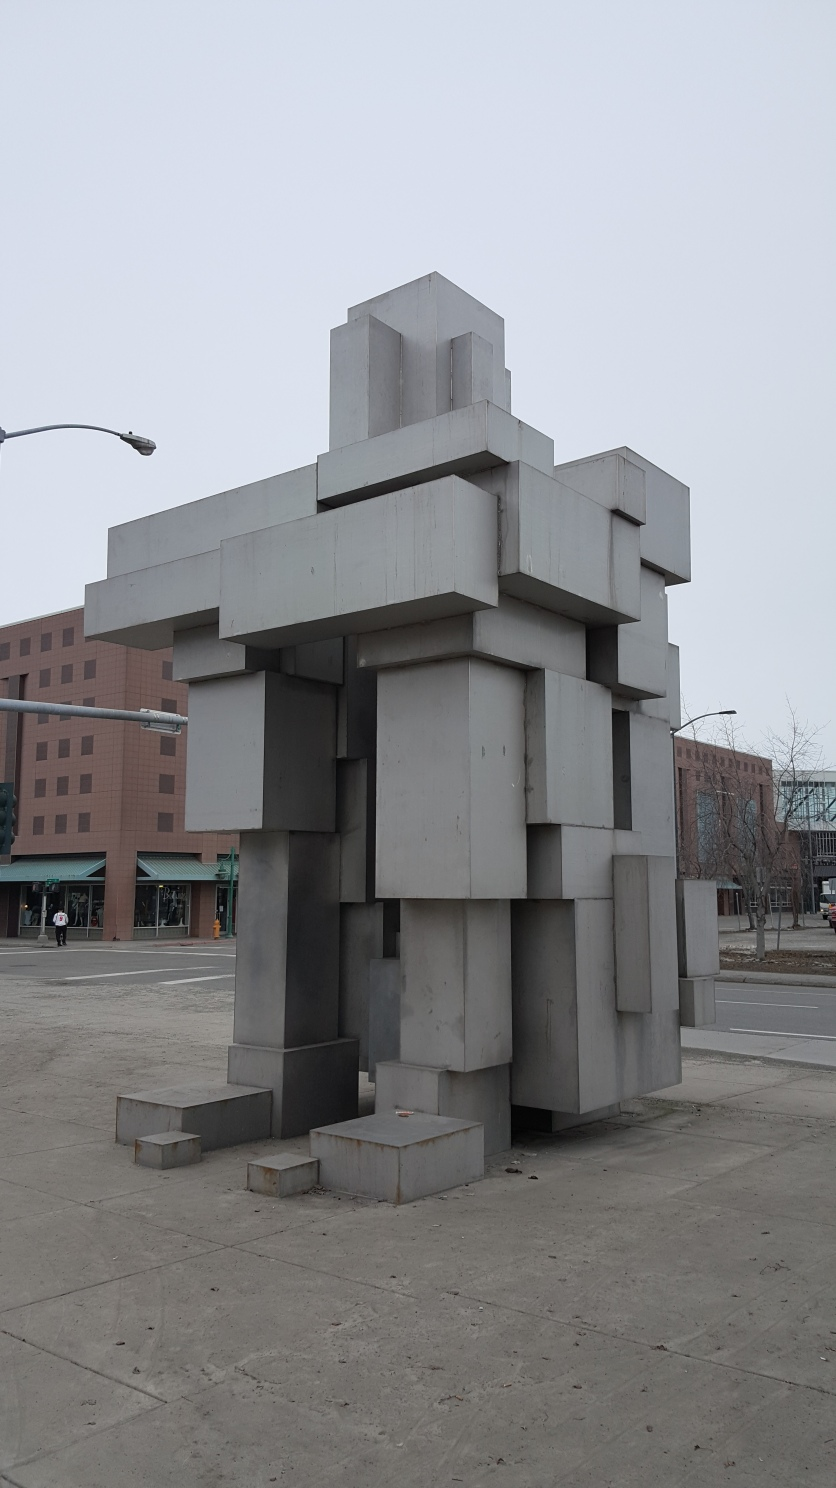 Downtown Anchorage Sculpture